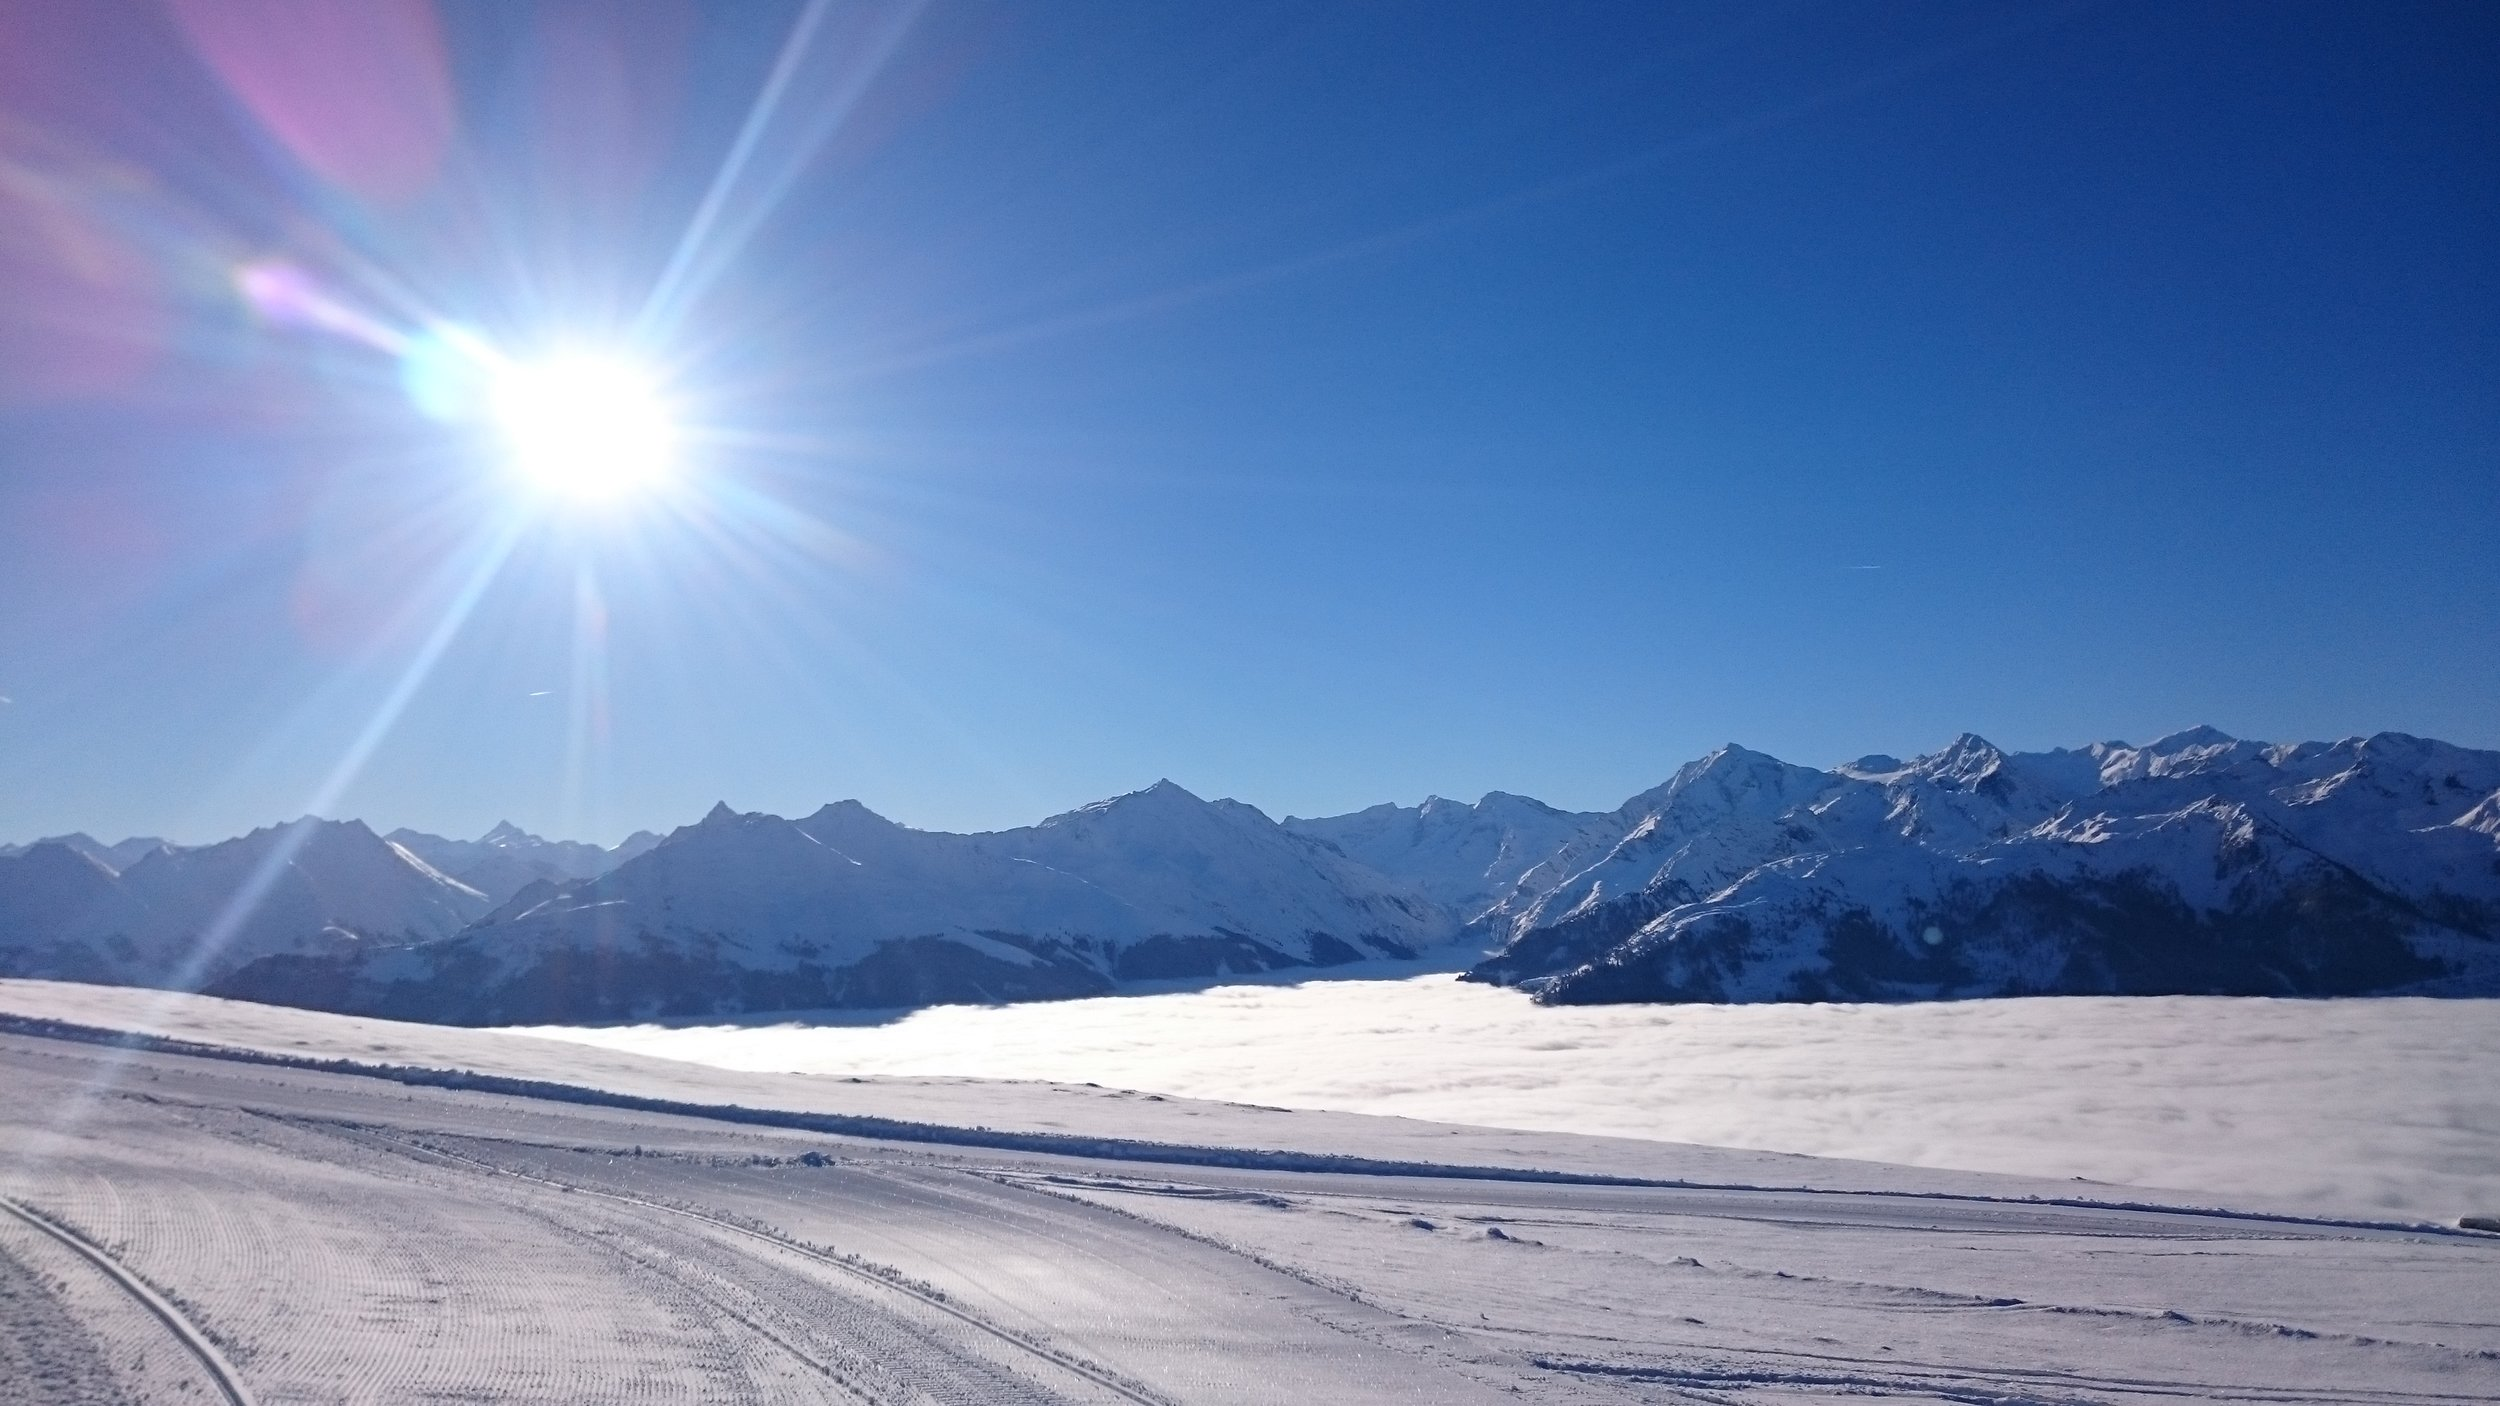 Above the clouds at Pass Thurn, Austria